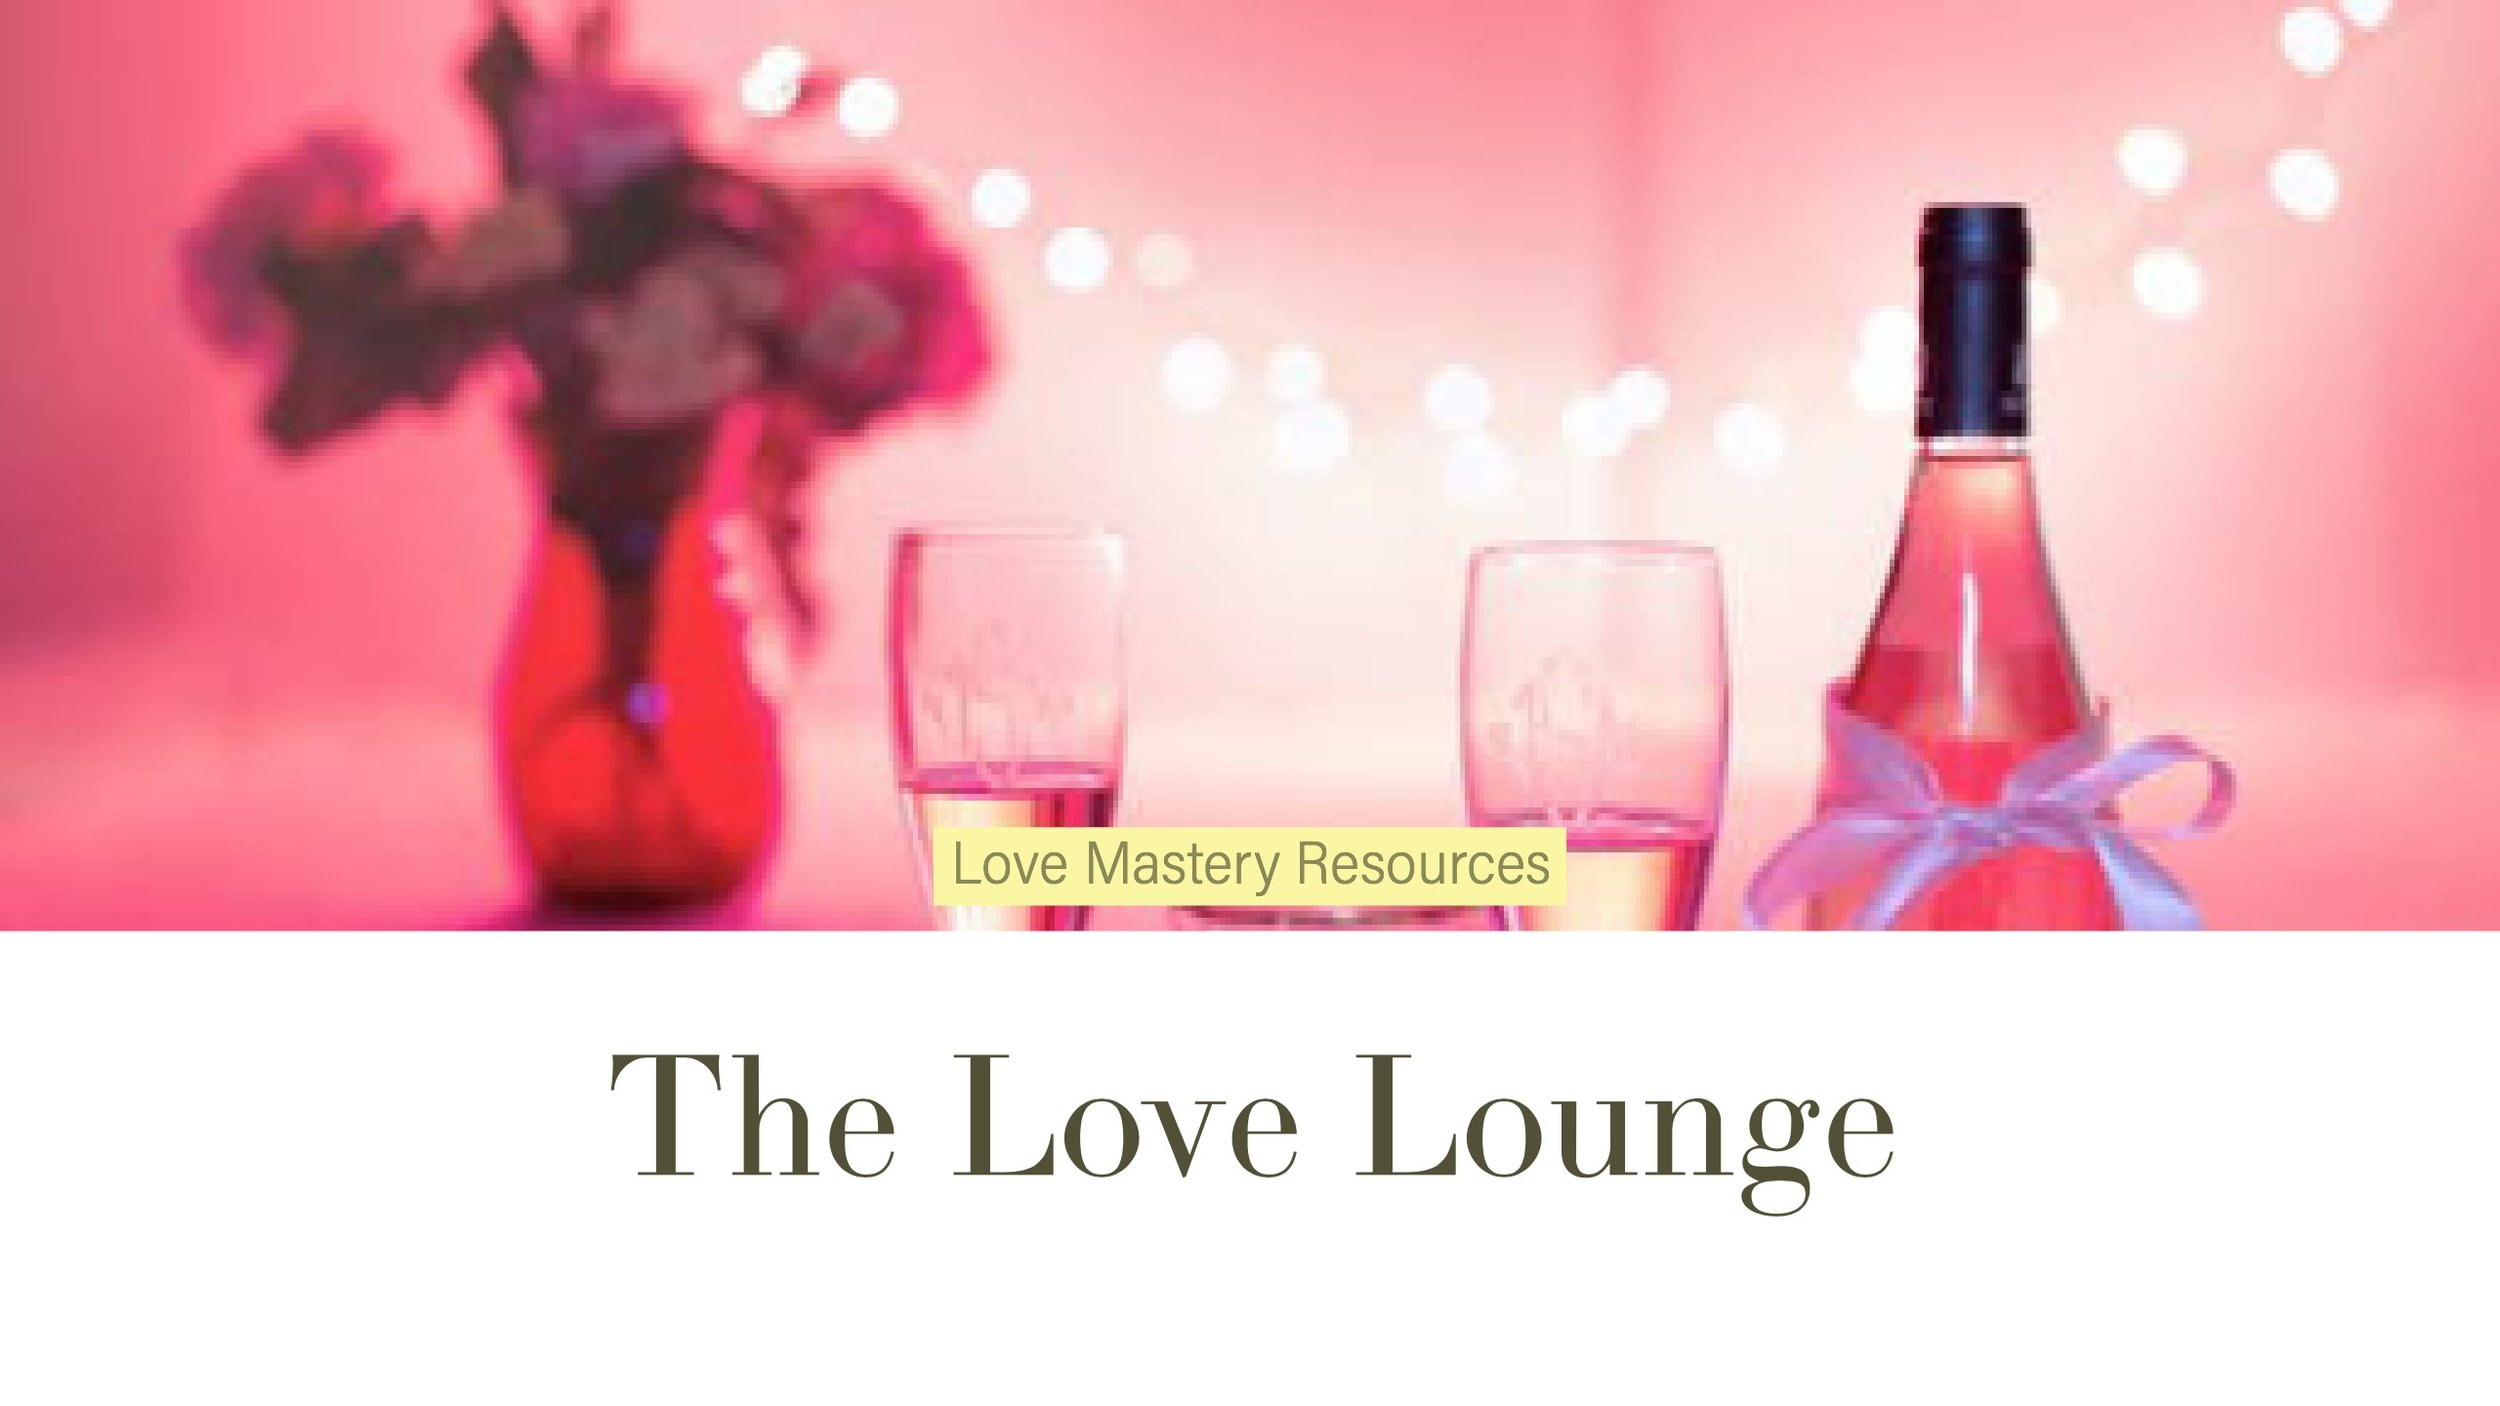 lovelounge.jpg